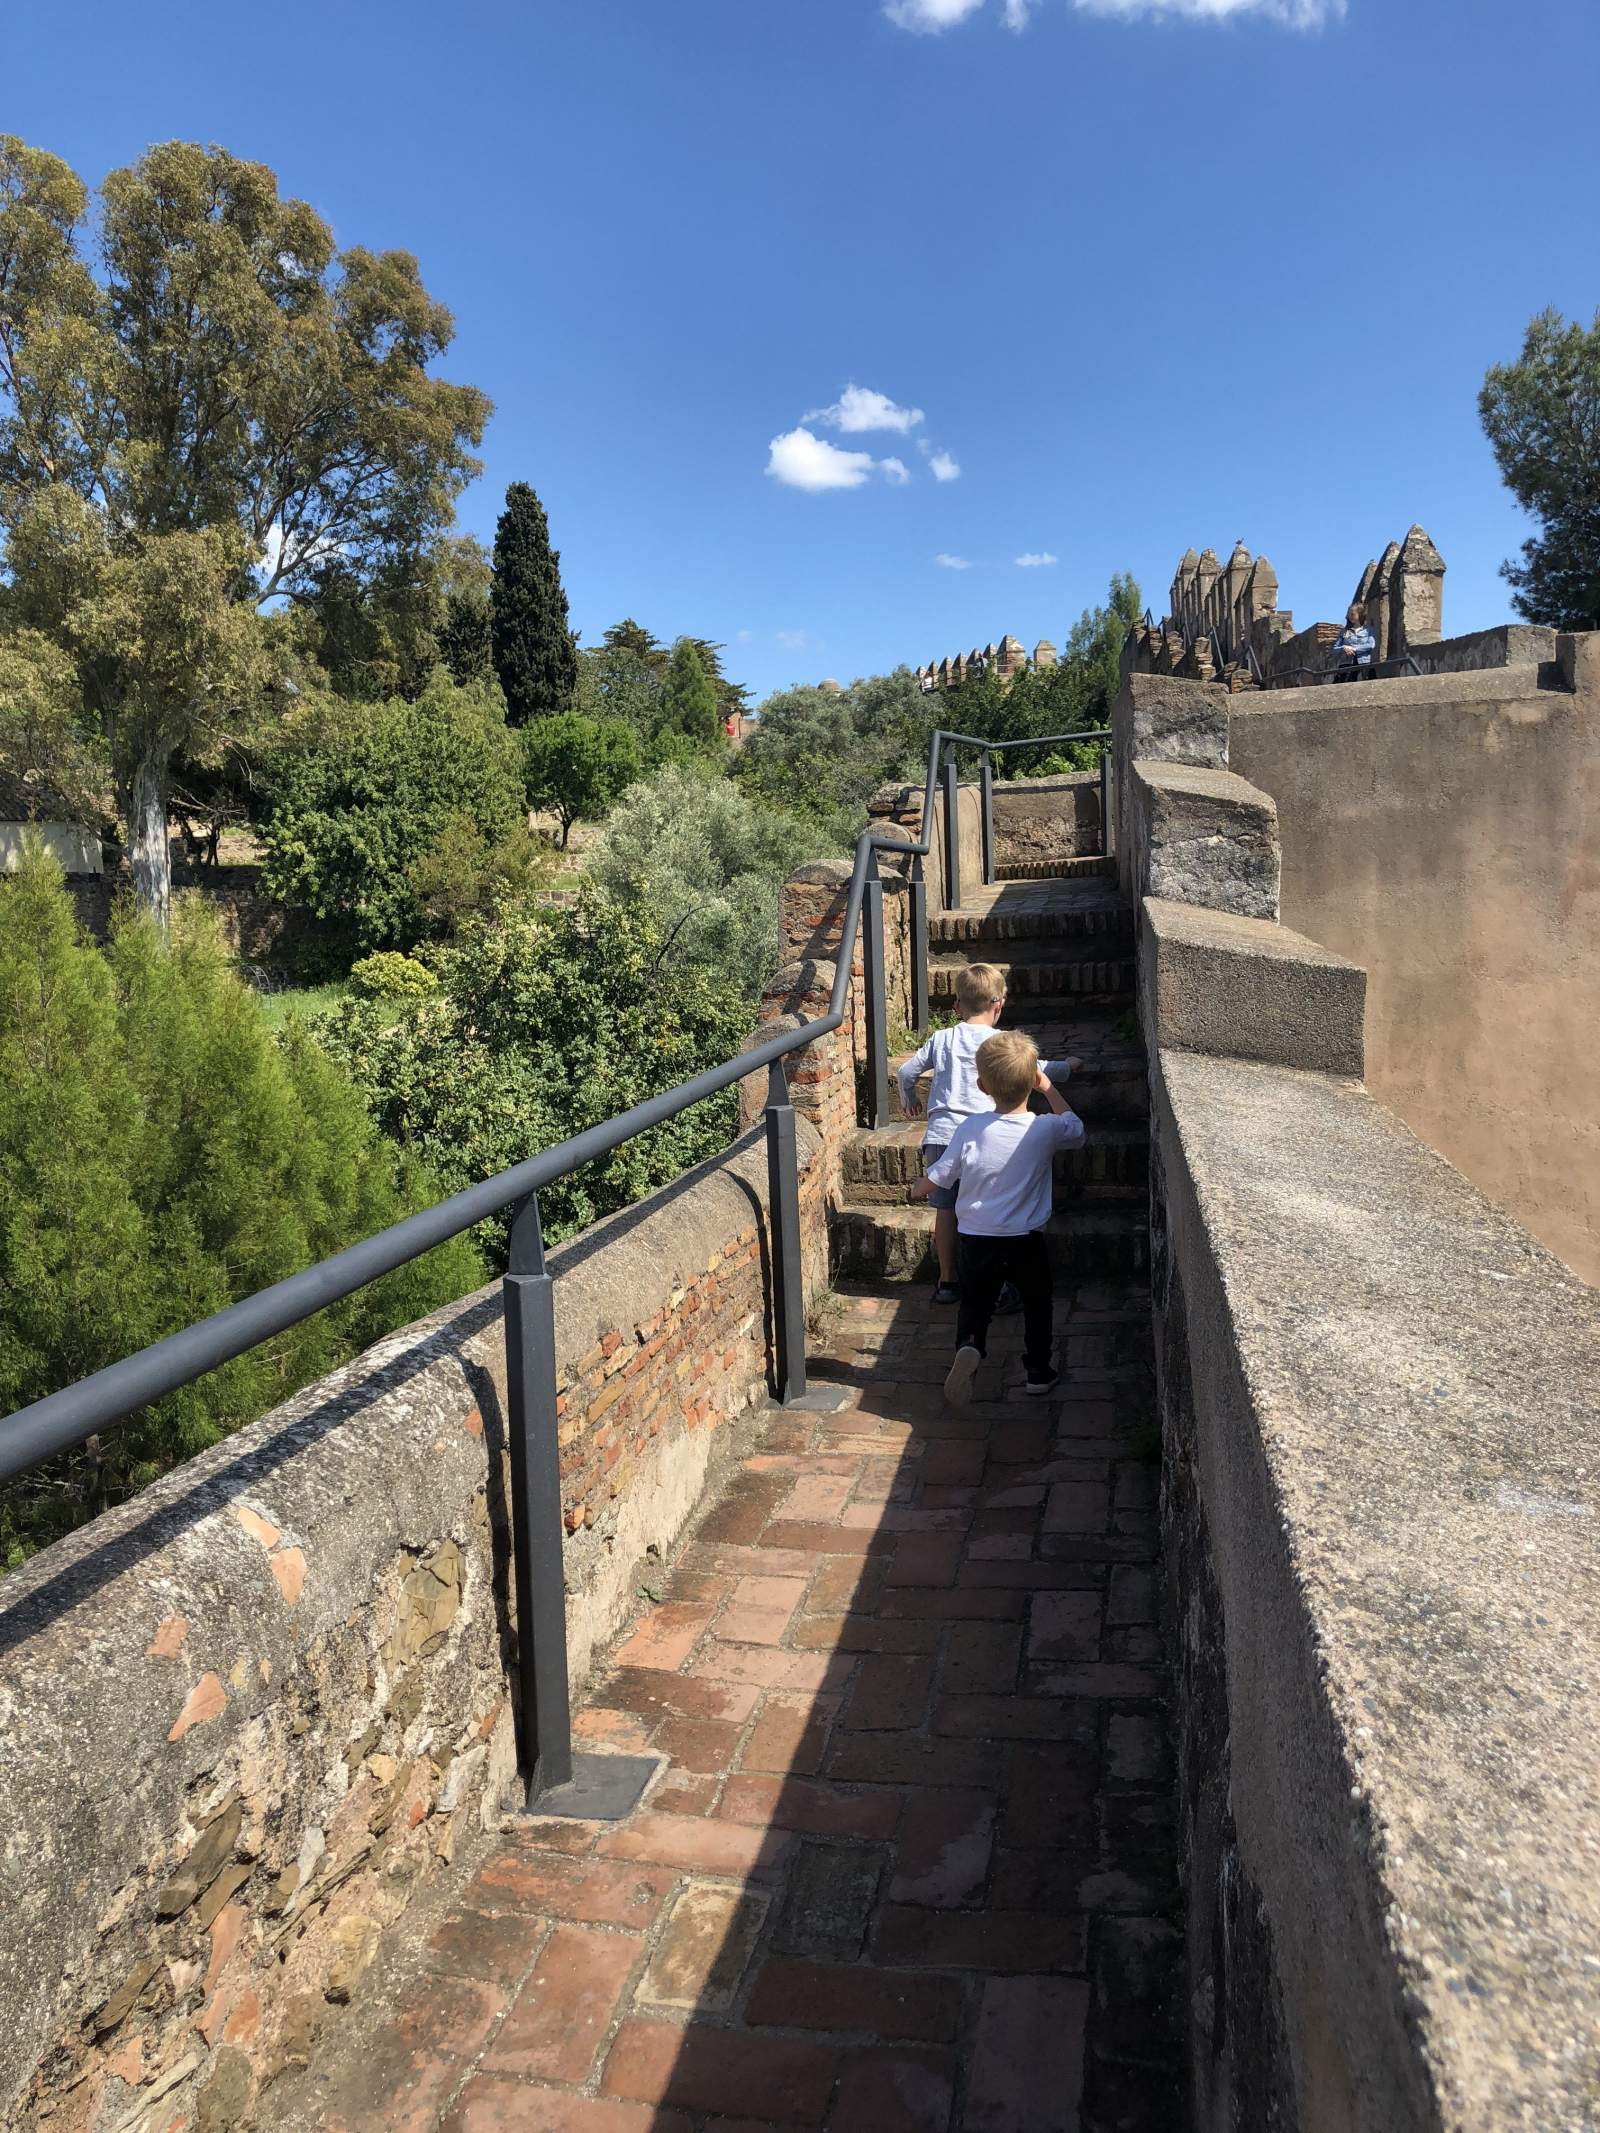 Two boys run along the walls in castillo de gibralfaro